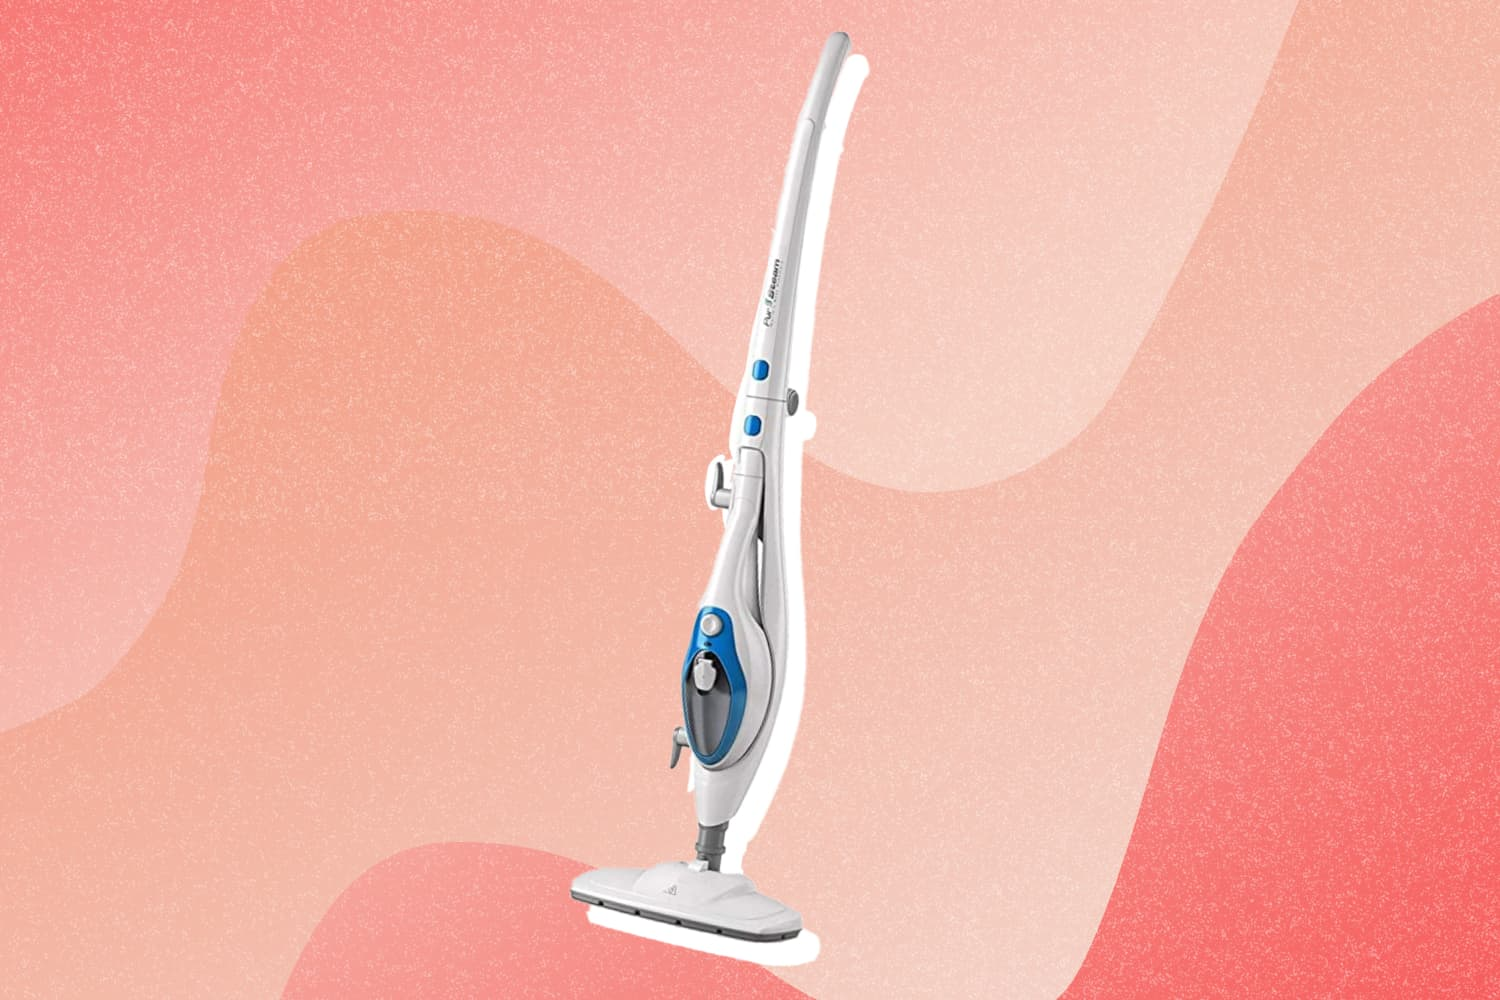 Amazon Reviewers Swear By This Steam Mop That Cleans Floors, Rugs, Glass, Grout — and Even Converts Into a Clothing Steamer